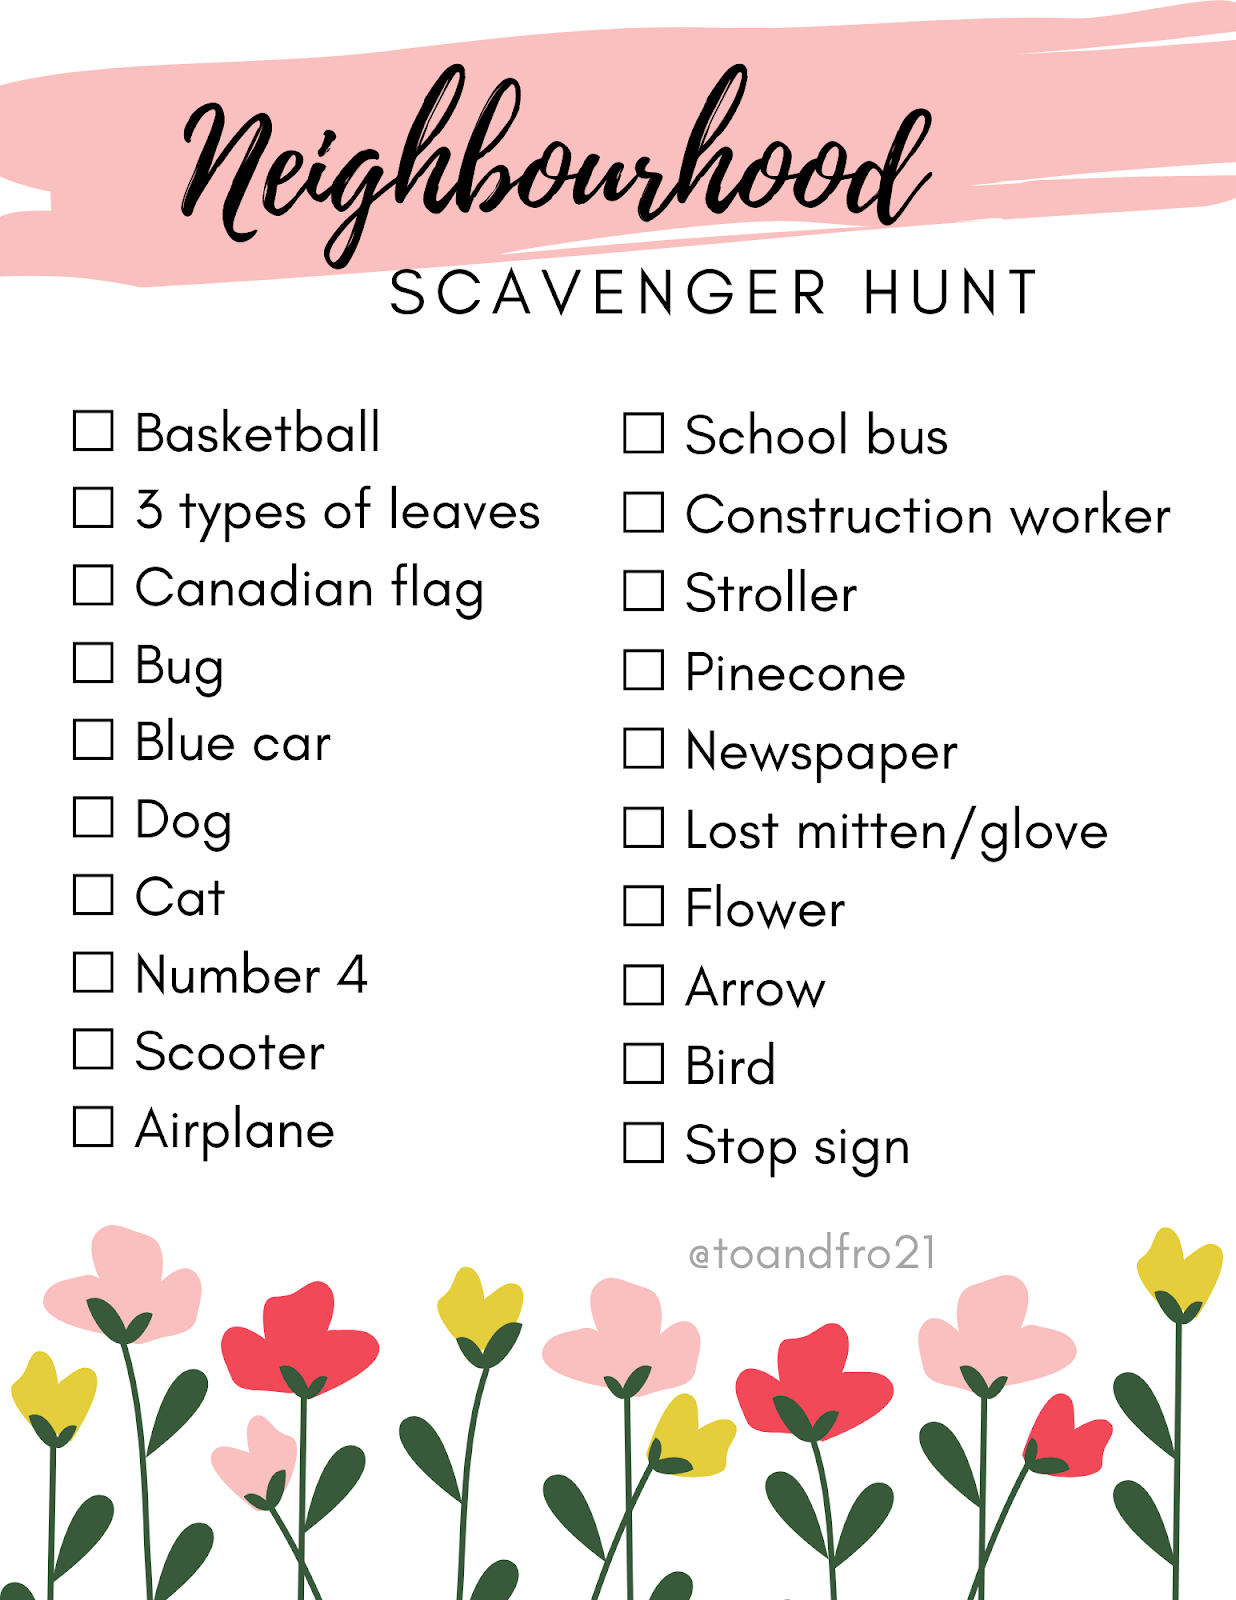 Kid-Friendly Social Distancing Activity: Neighbourhood Scavenger Hunt